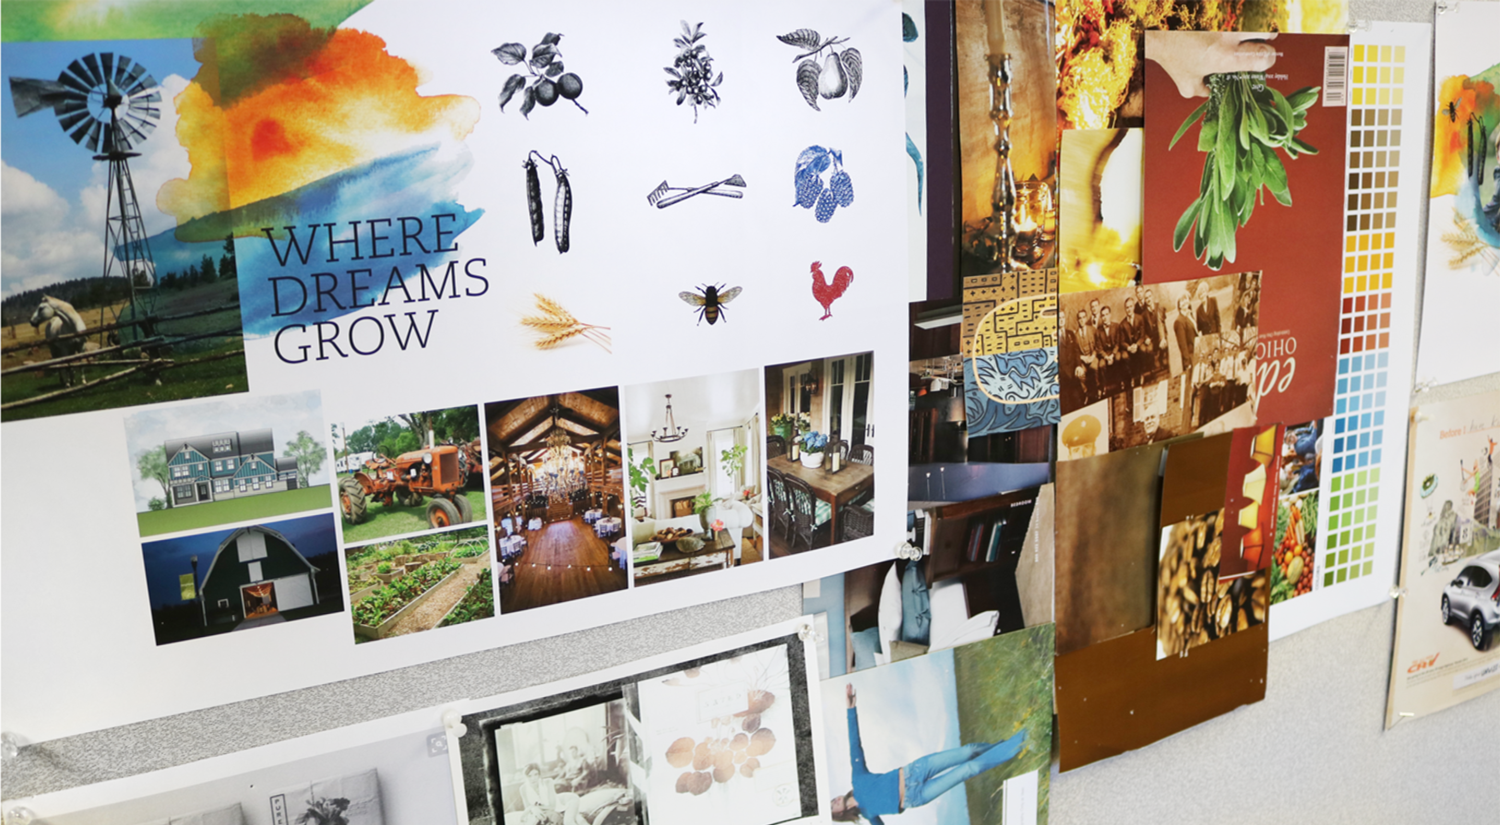 Moodboards with vintage illustrations & watercolor inspired by painting classes in community